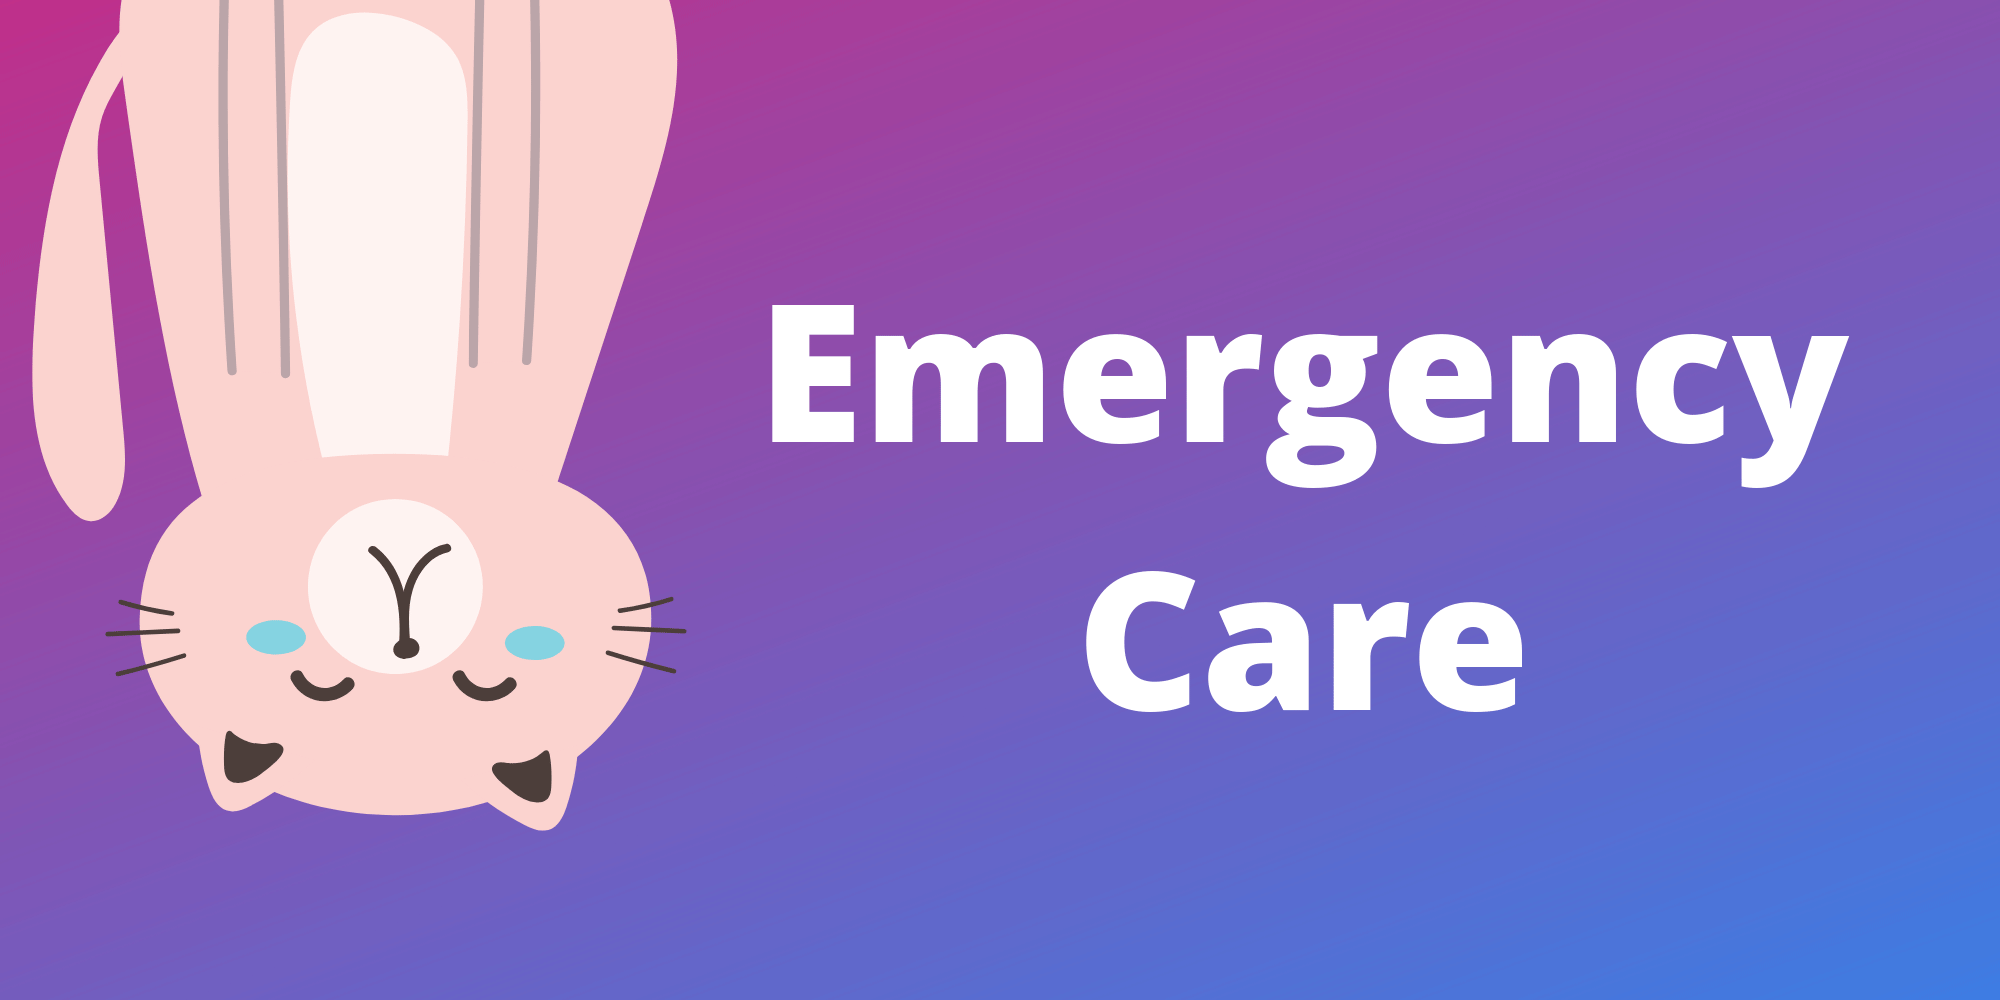 Emergency Care Tips for Cat Sitting